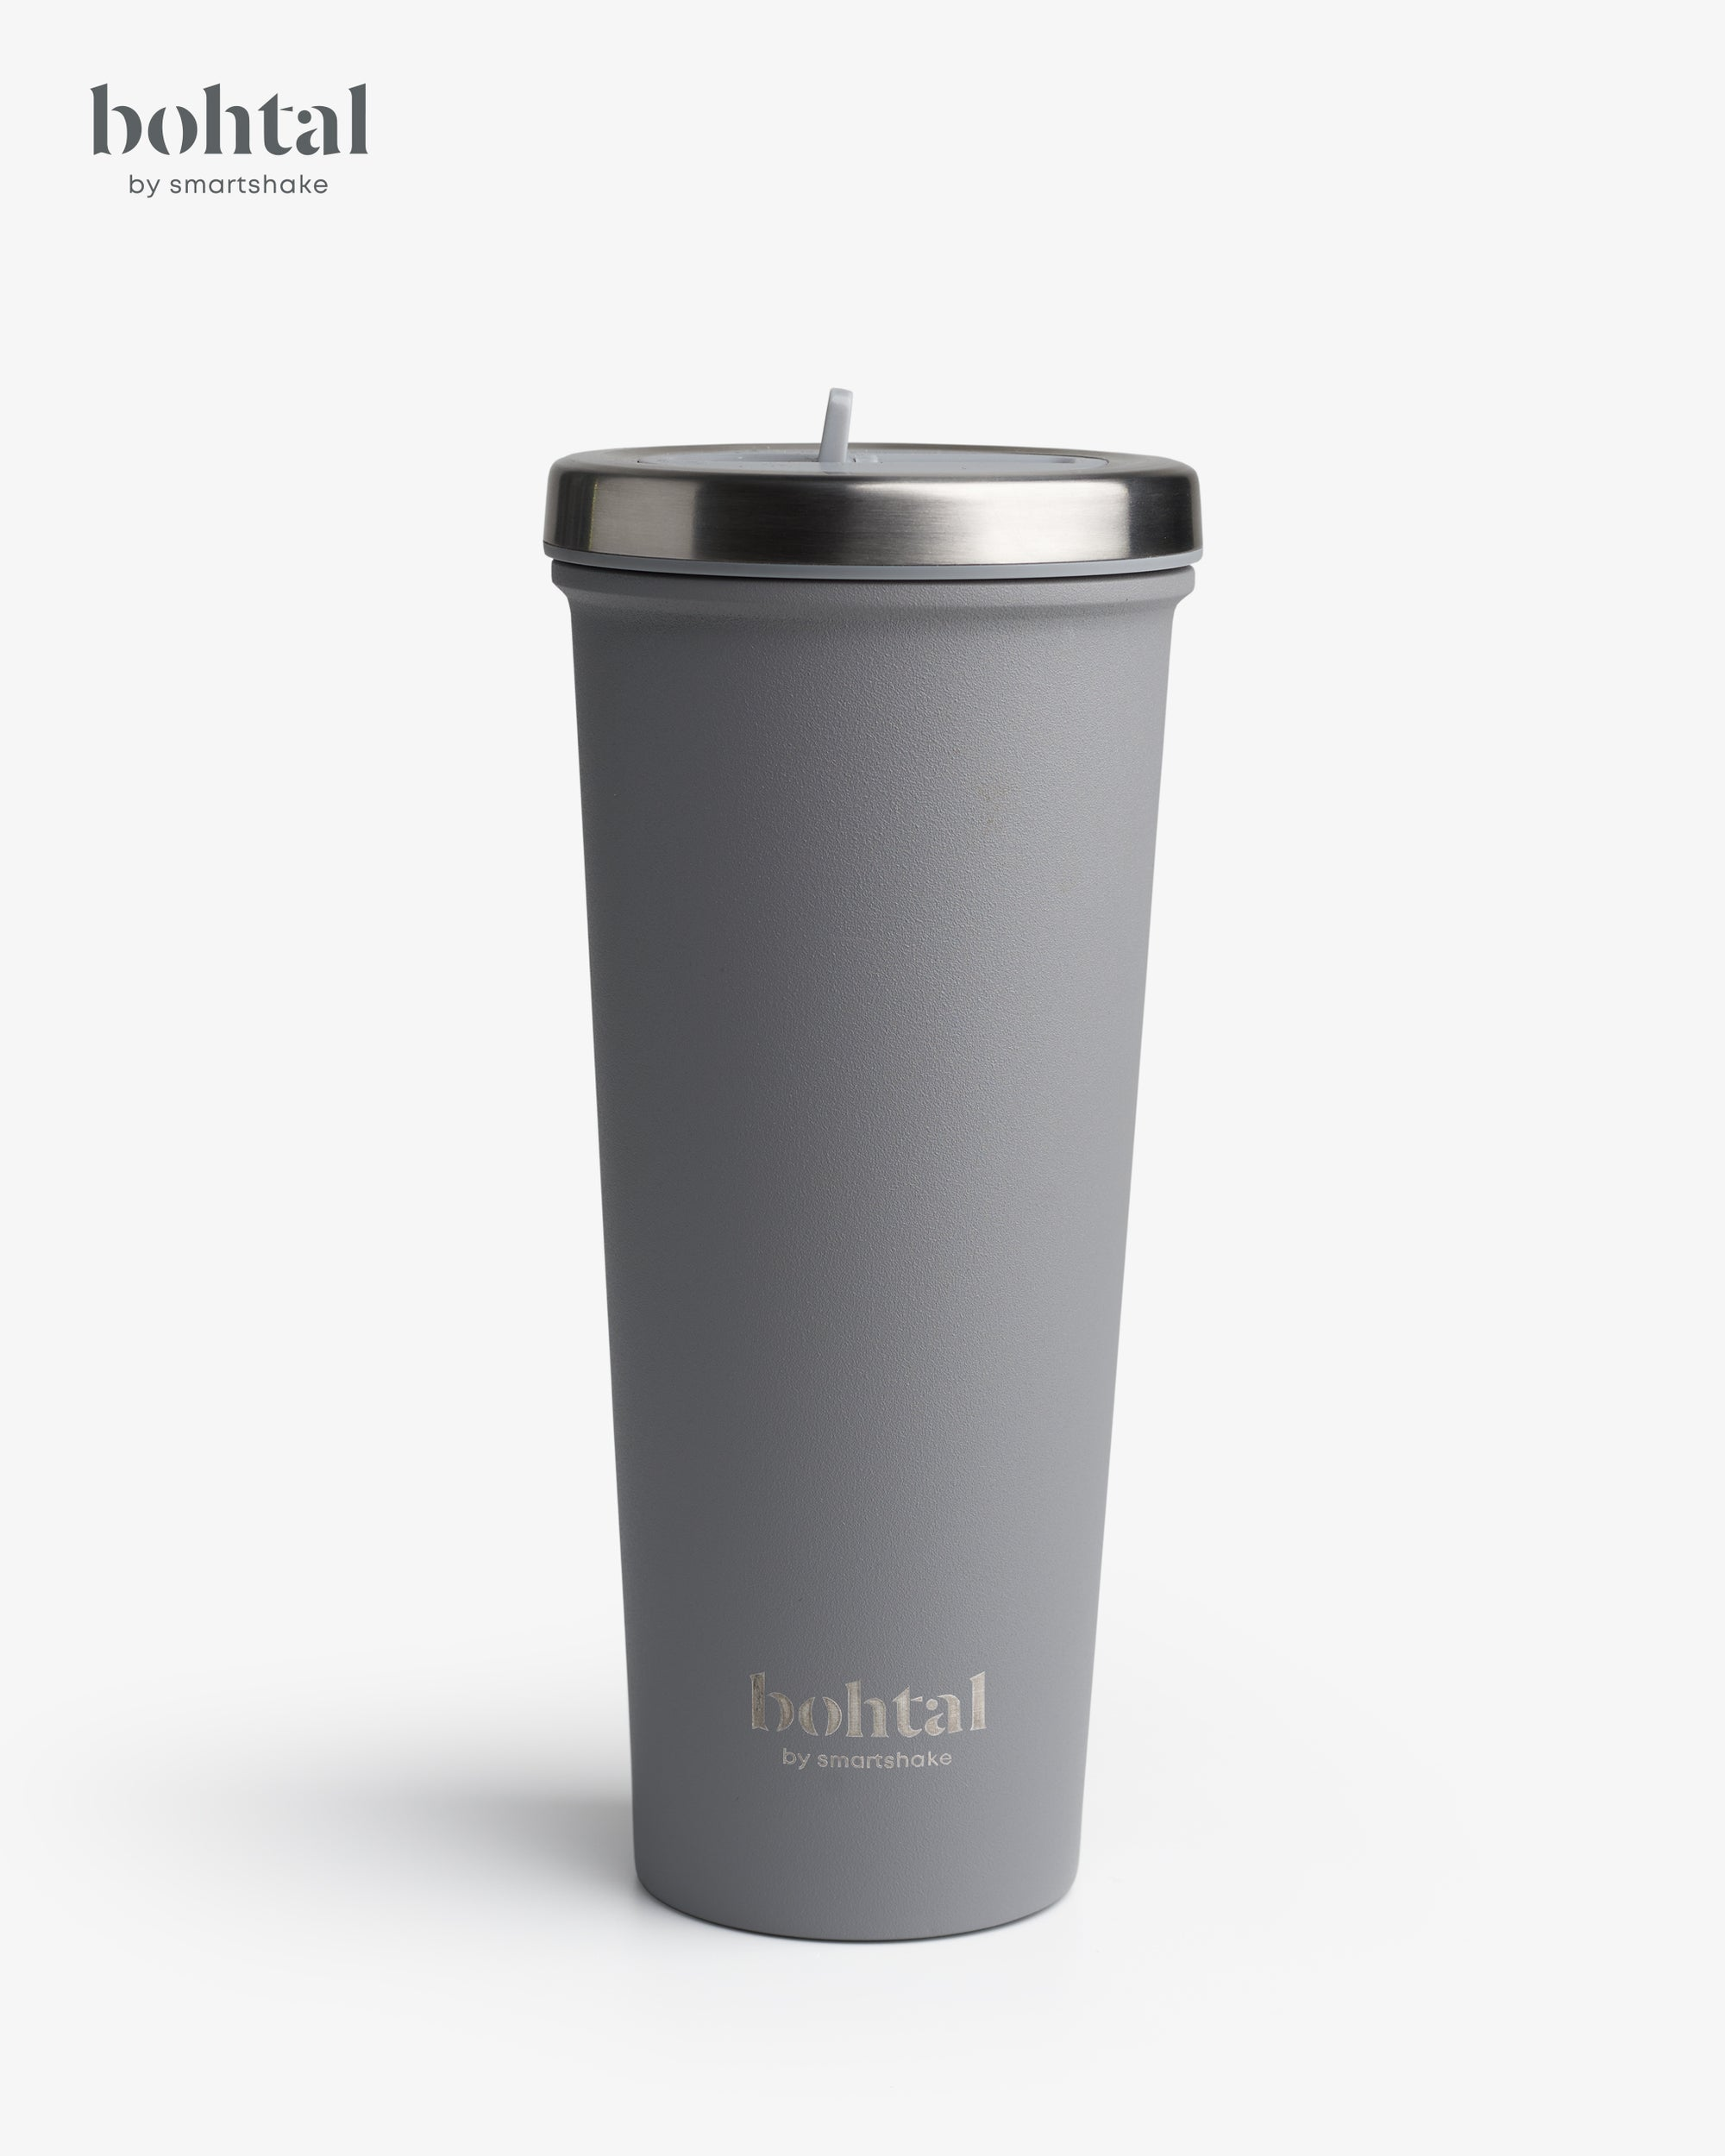 Bohtal Insulated Tumbler Gray